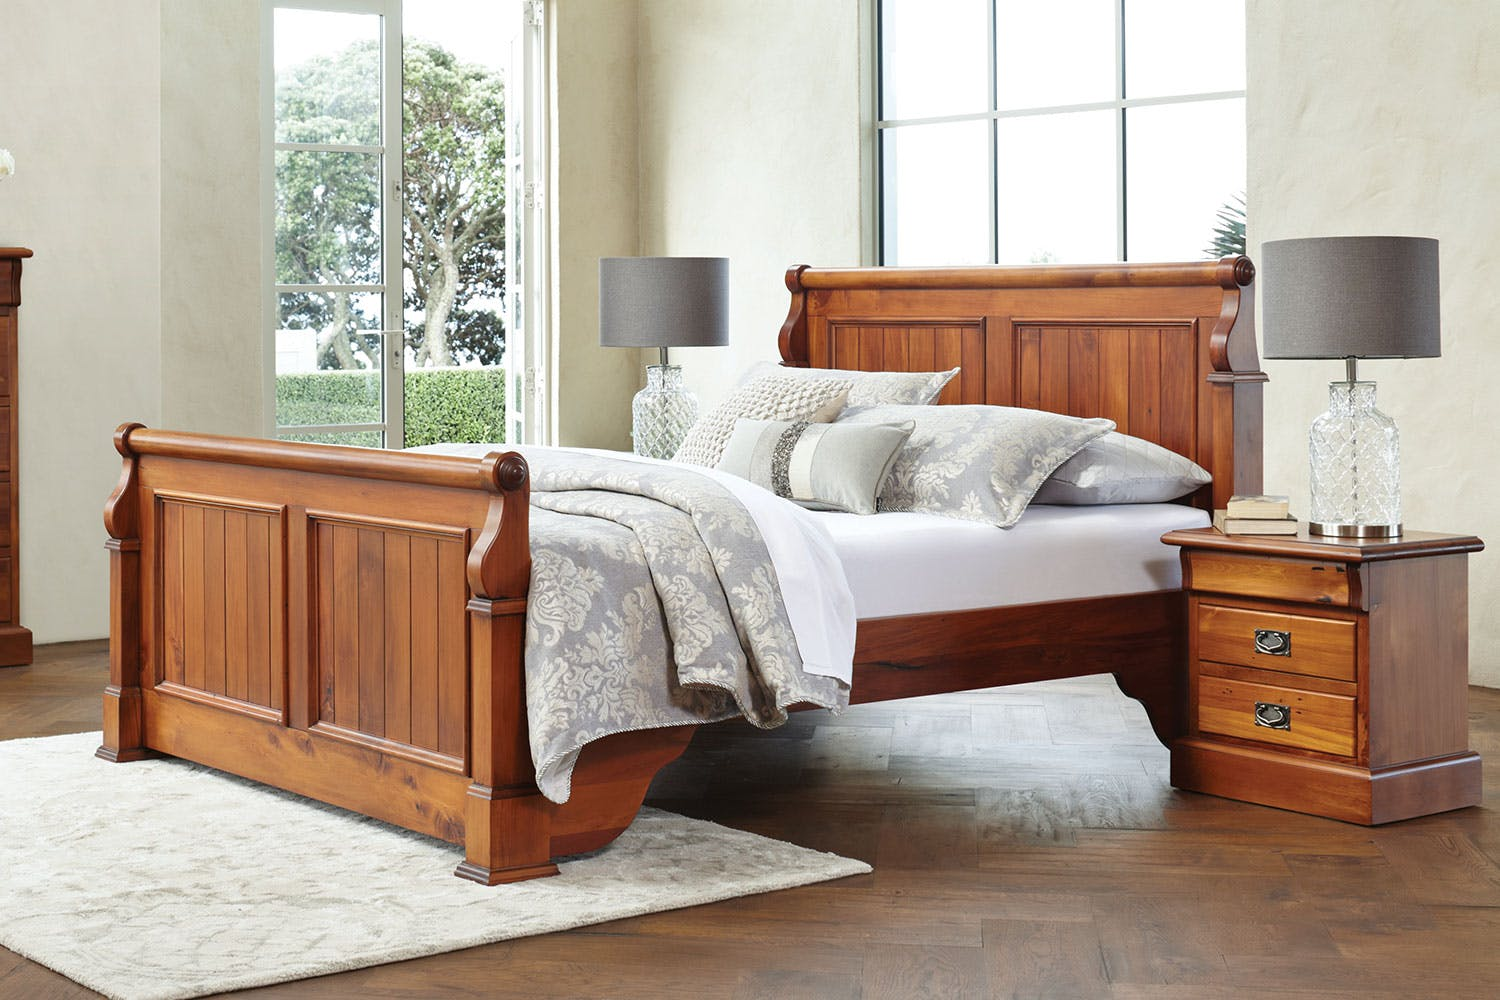 Image of Clevedon King Bed Frame by Woodpecker Furniture